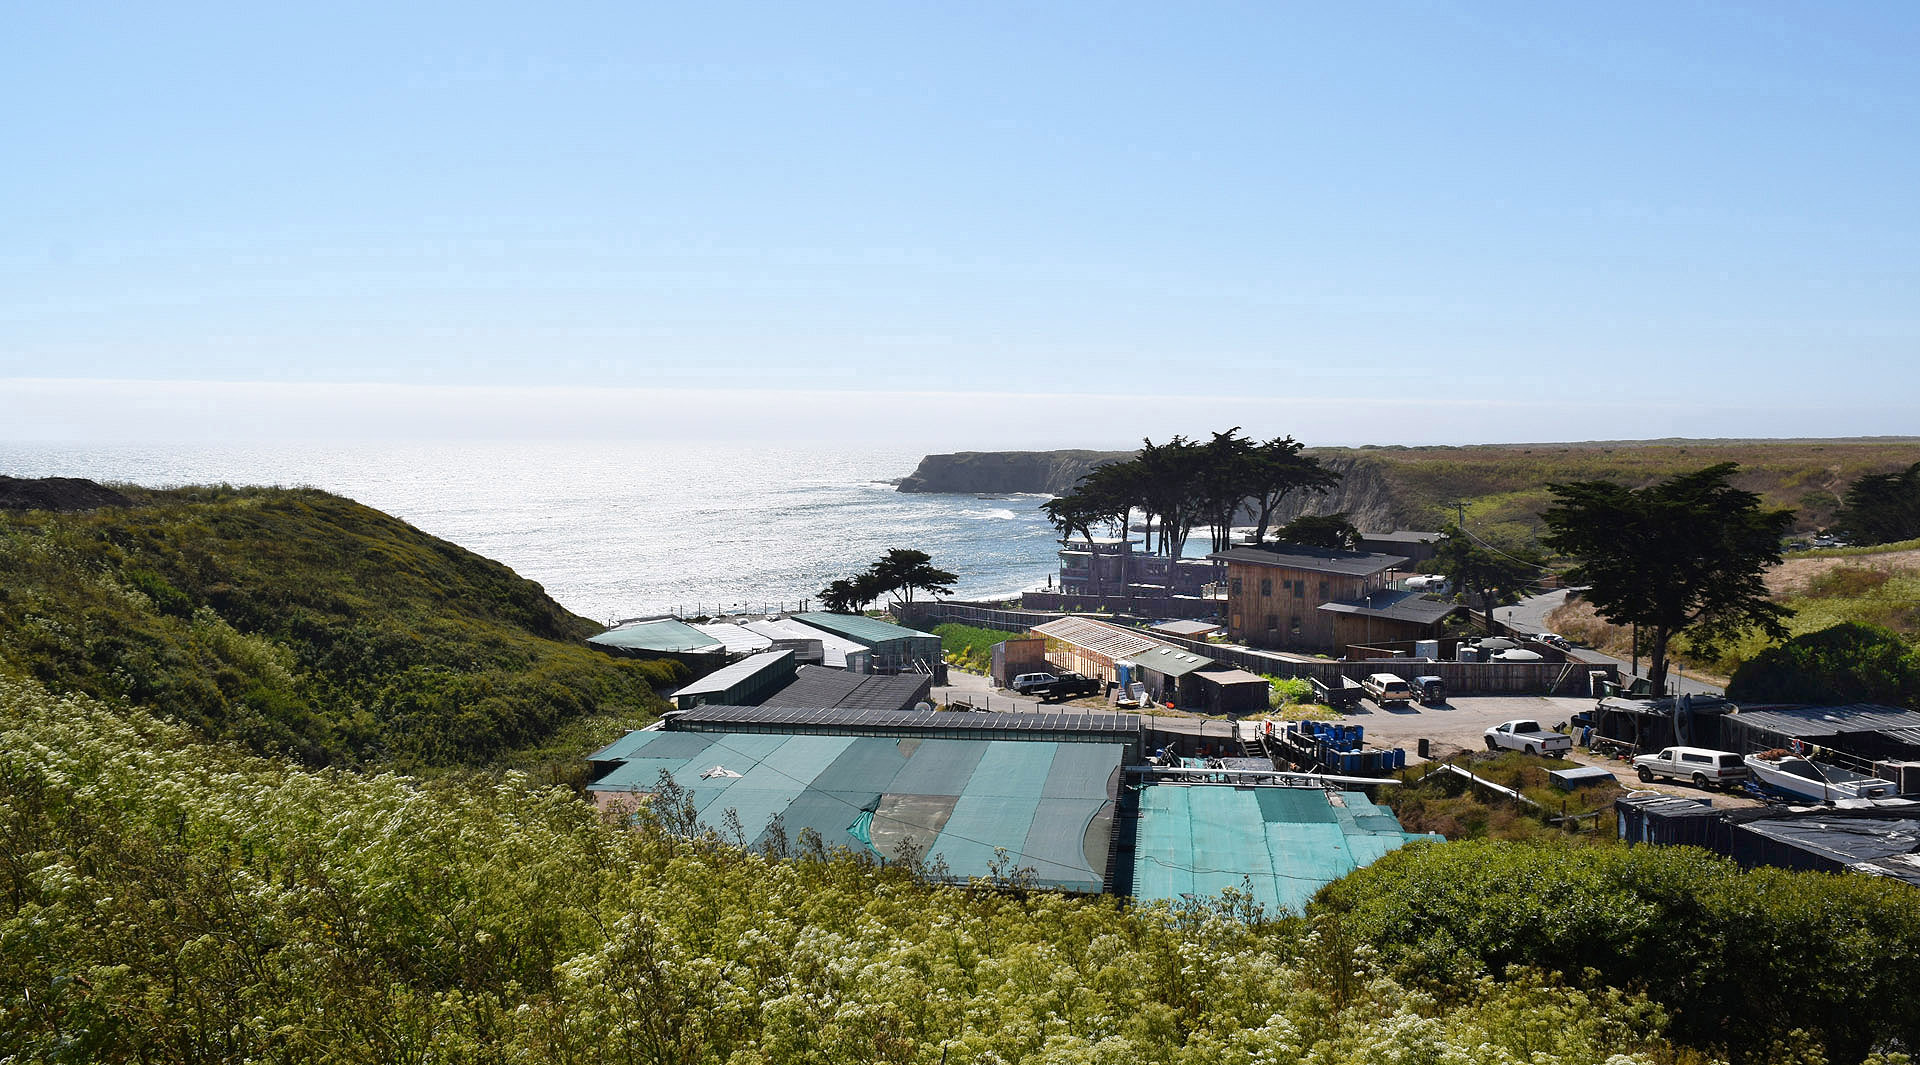 Thank you KQED for this great shot of the AAF farm in Davenport:https://ww2.kqed.org/bayareabites/wp-content/uploads/sites/24/2017/07/American-Abalone-Farms-BAB.jpg